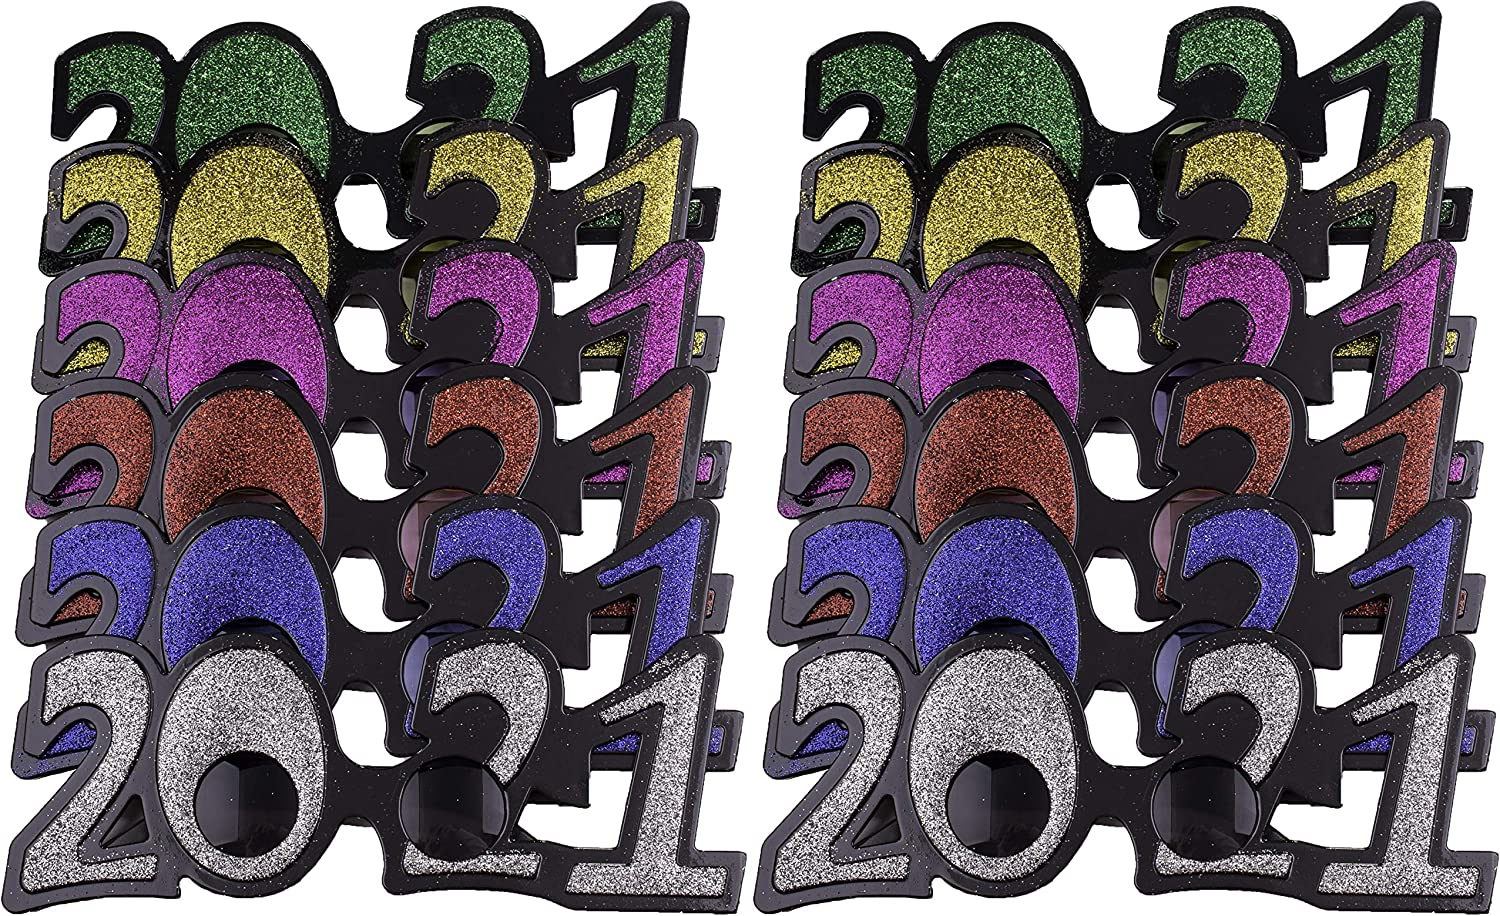 12 Pack of 2021 New Years Eve Party Glasses Classic Glitter